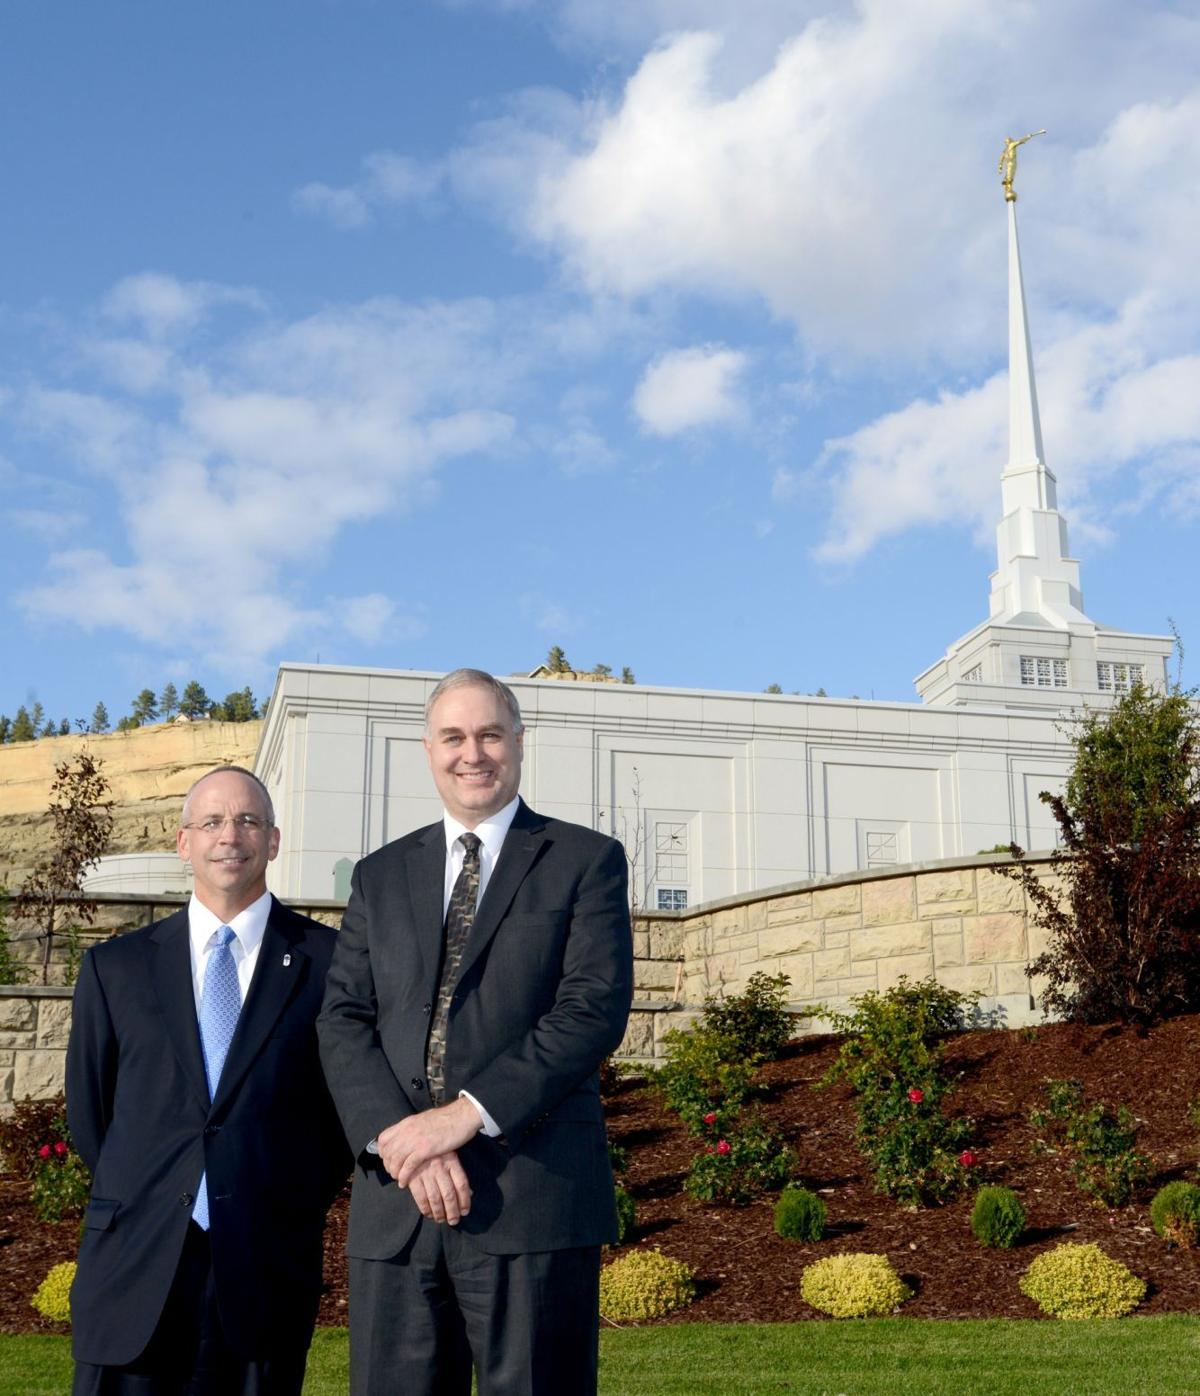 LDS stake presidents